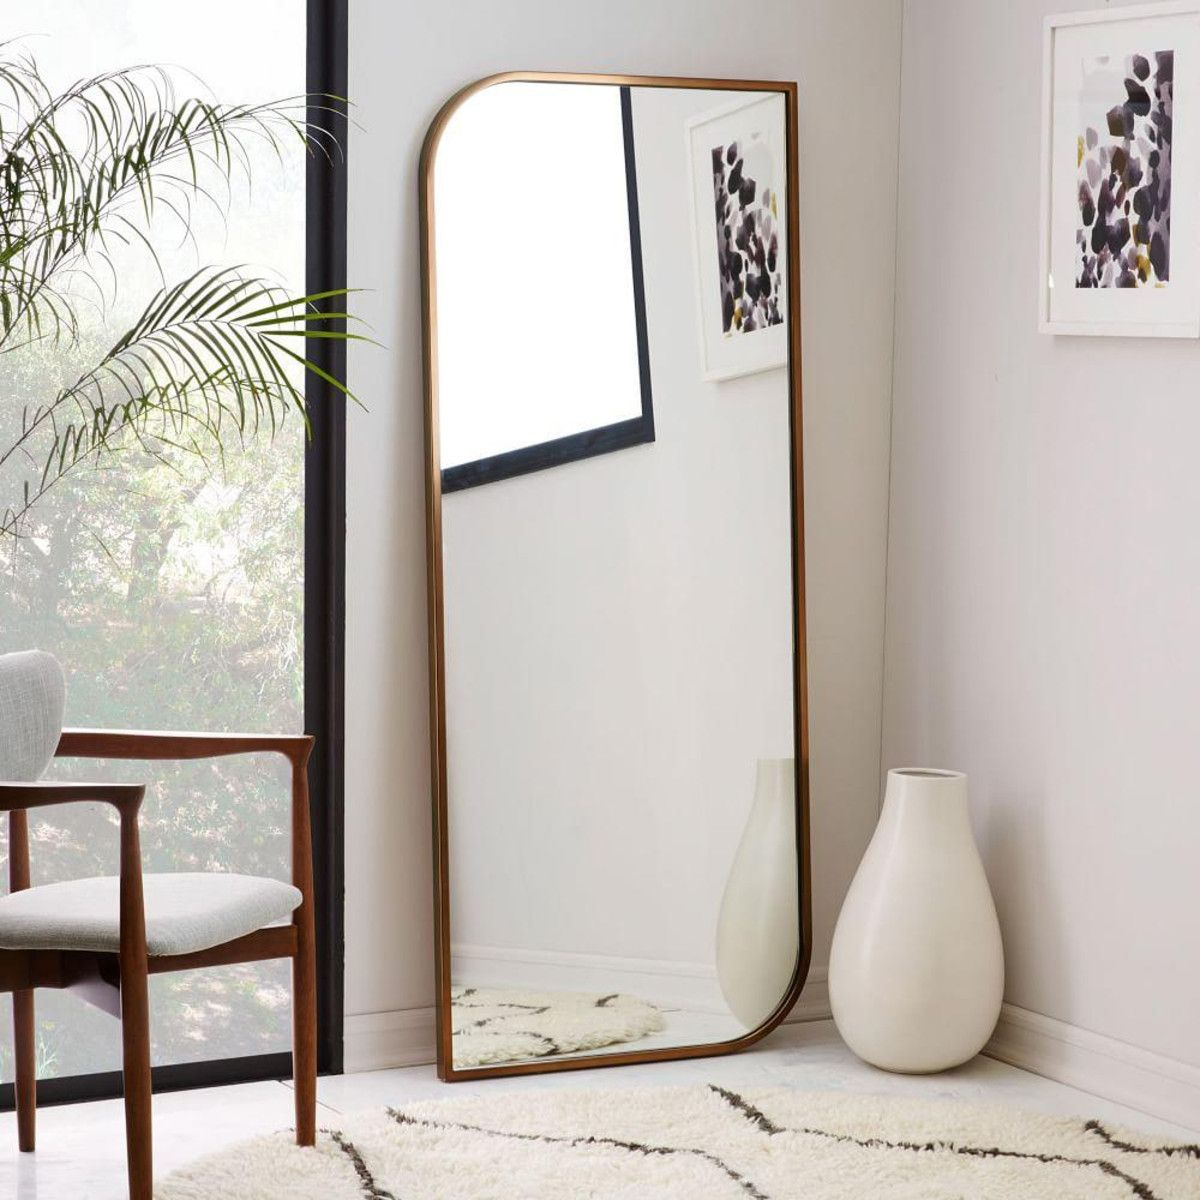 Bad Feng Shui Mirror Placement 5 Areas Where A Mirror Should Be Placed Correctly According